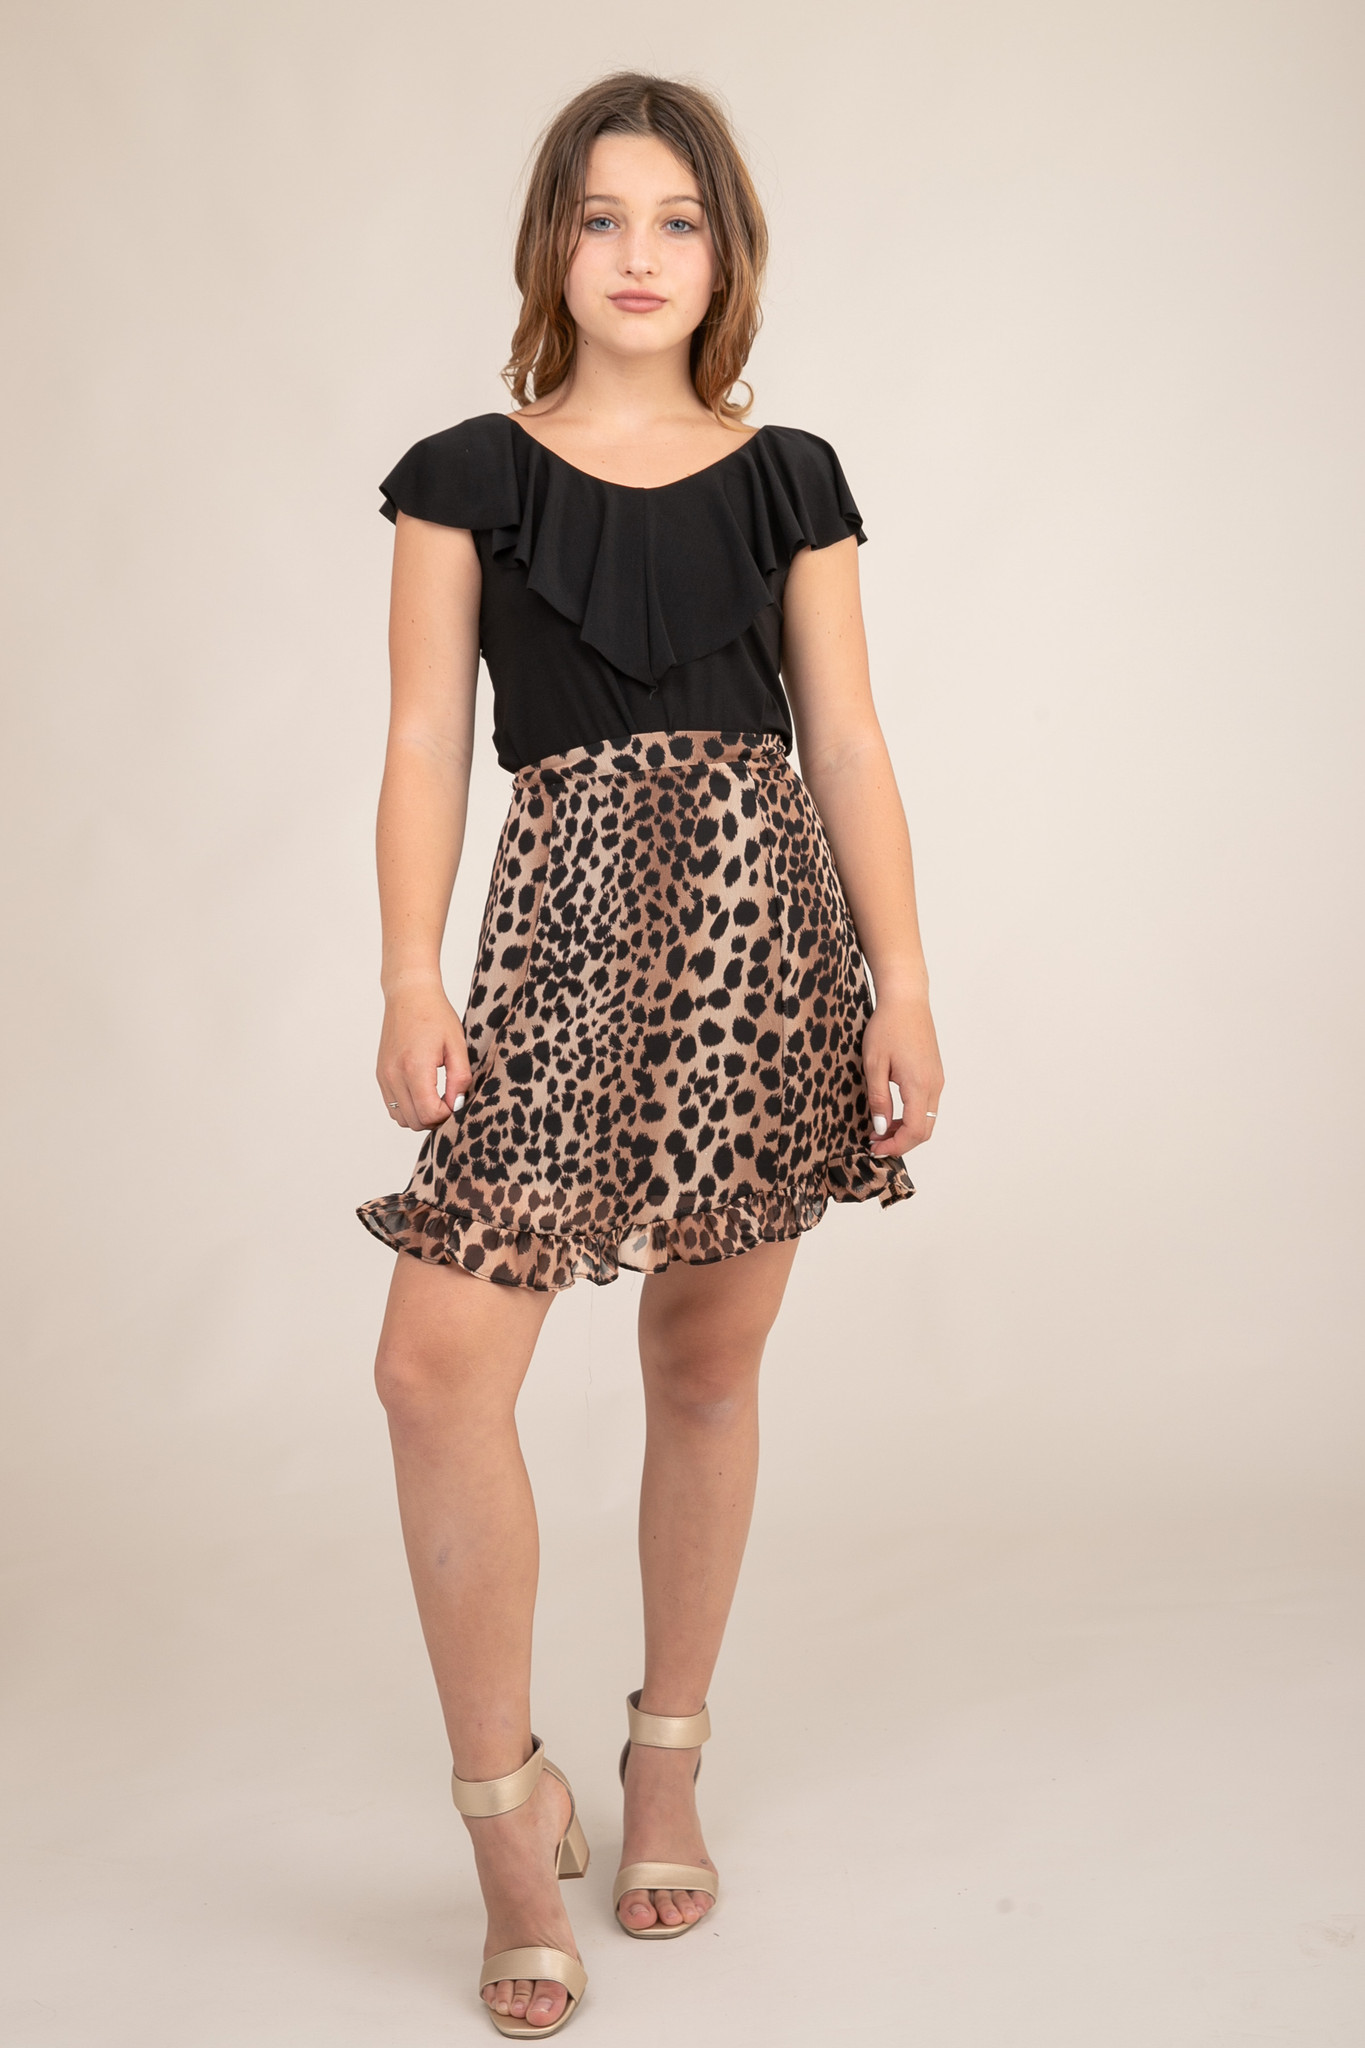 Tween Girls Cheetah Skirt in Longer Length close up view.